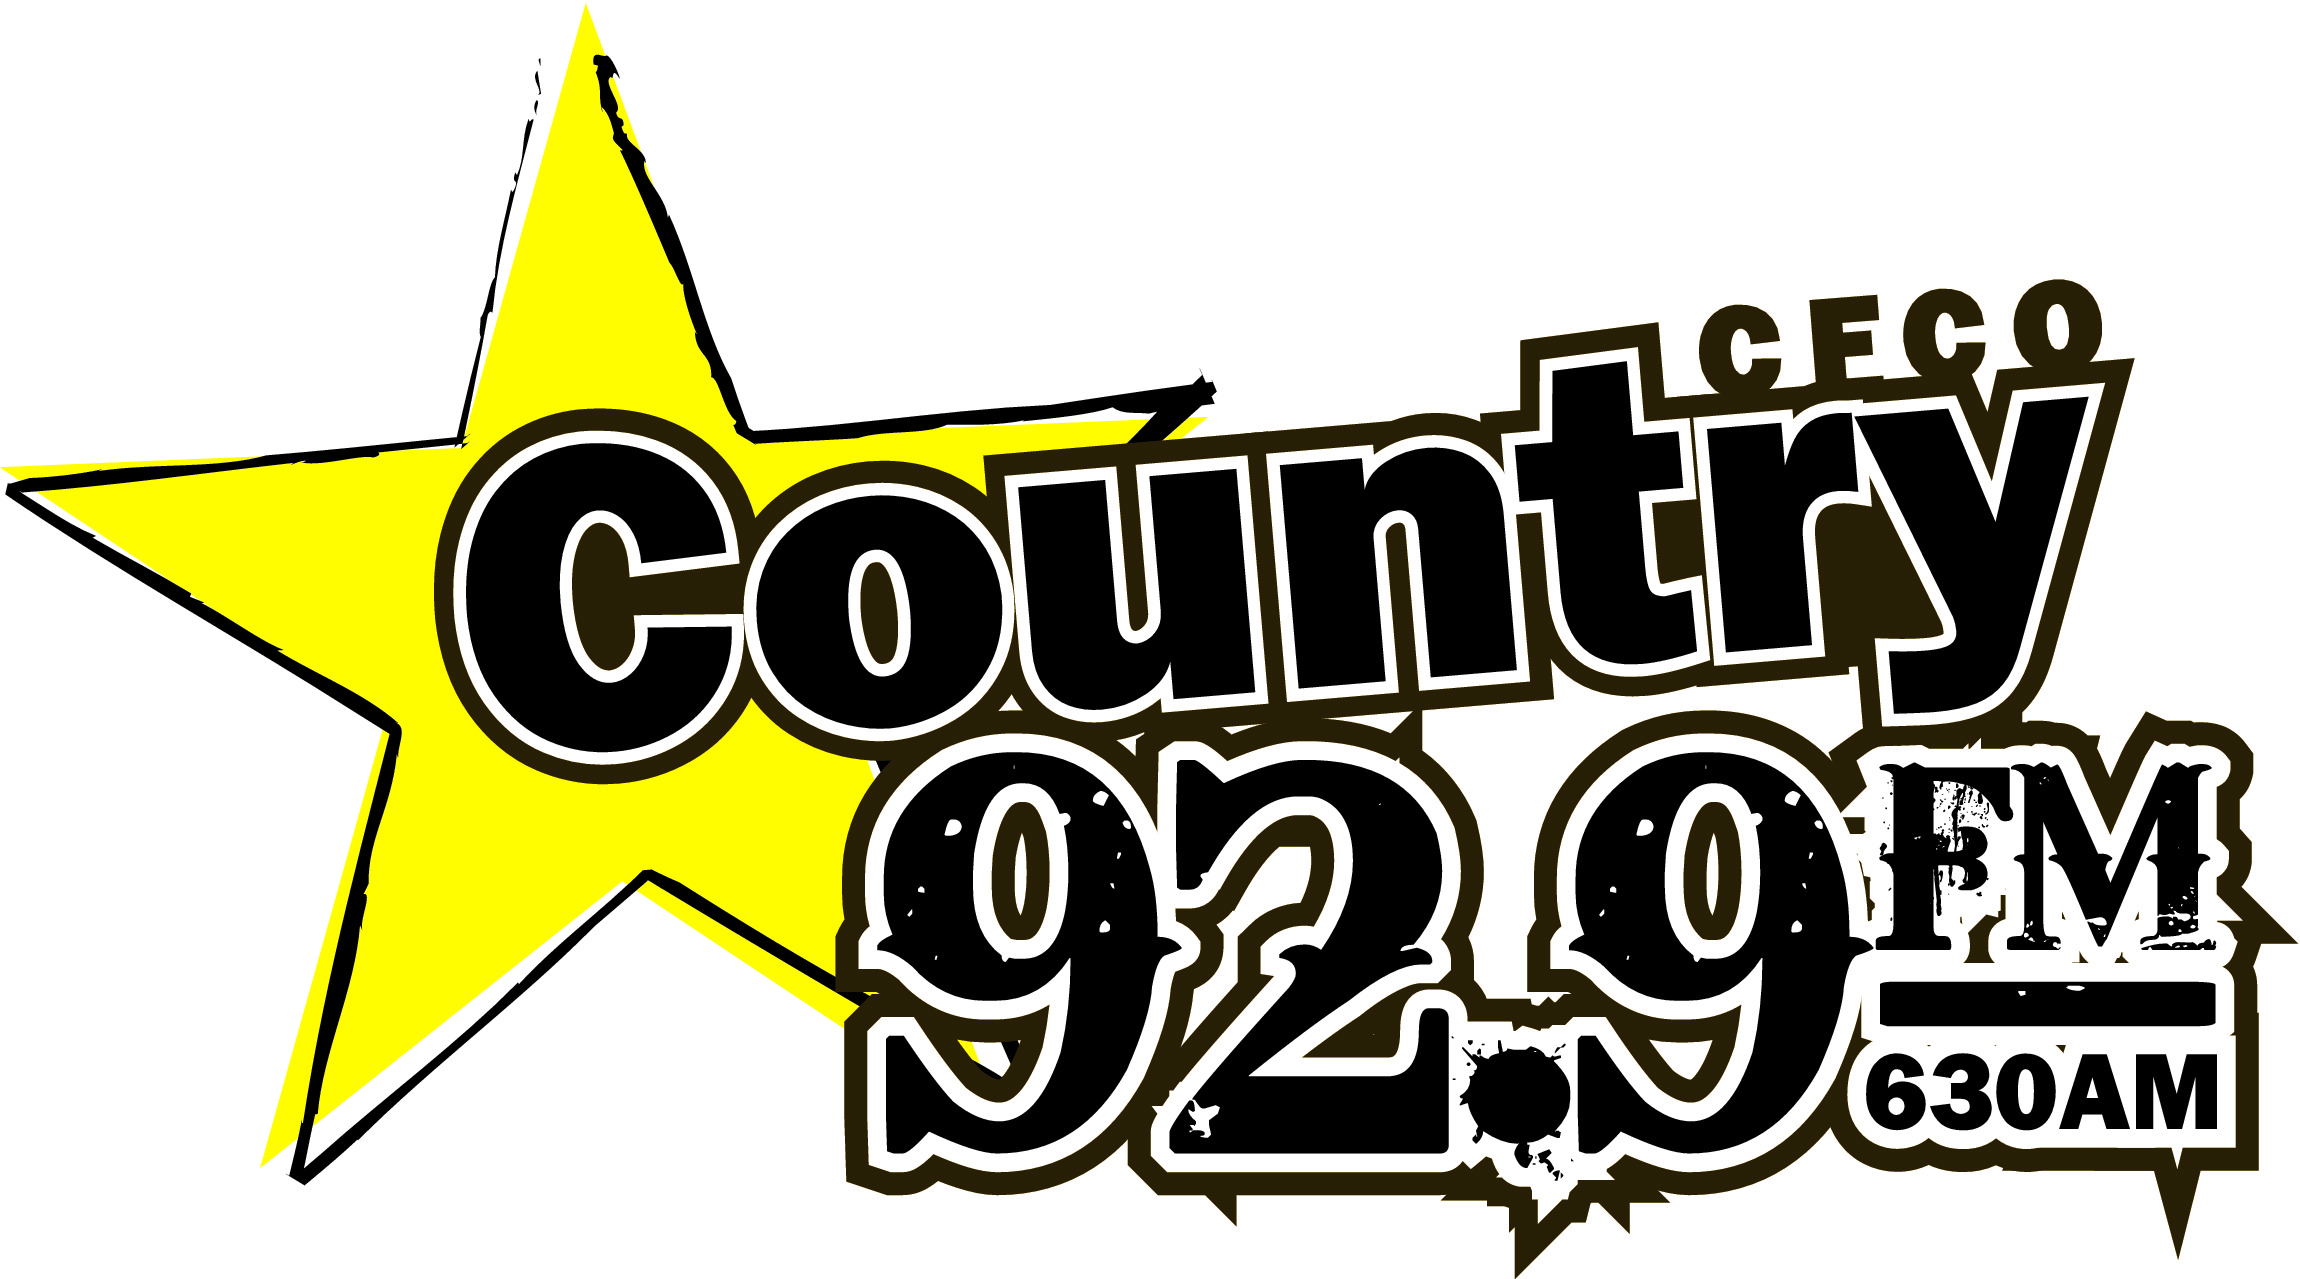 Country 92.9 eps